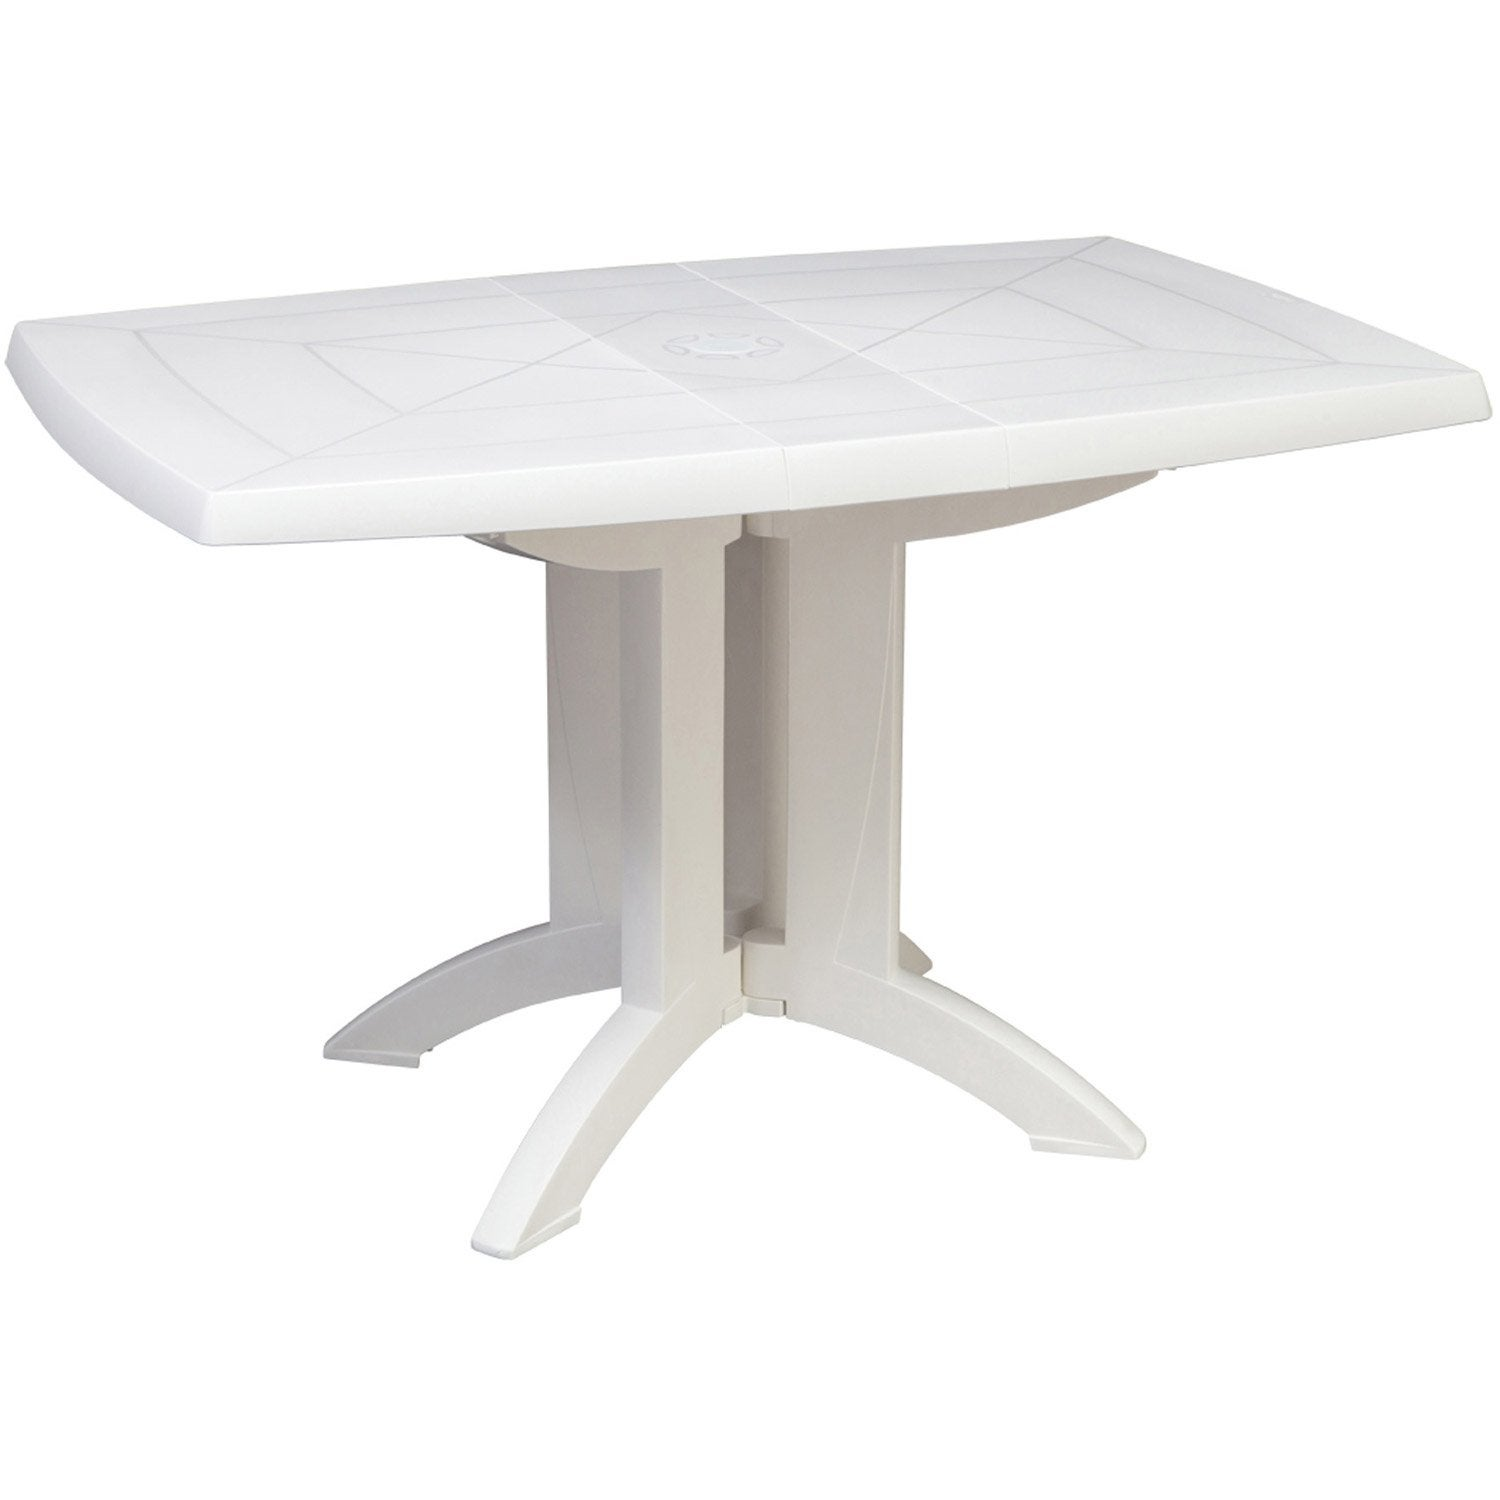 Table de jardin grosfillex v ga rectangulaire blanc 4 for Table de jardin chez castorama